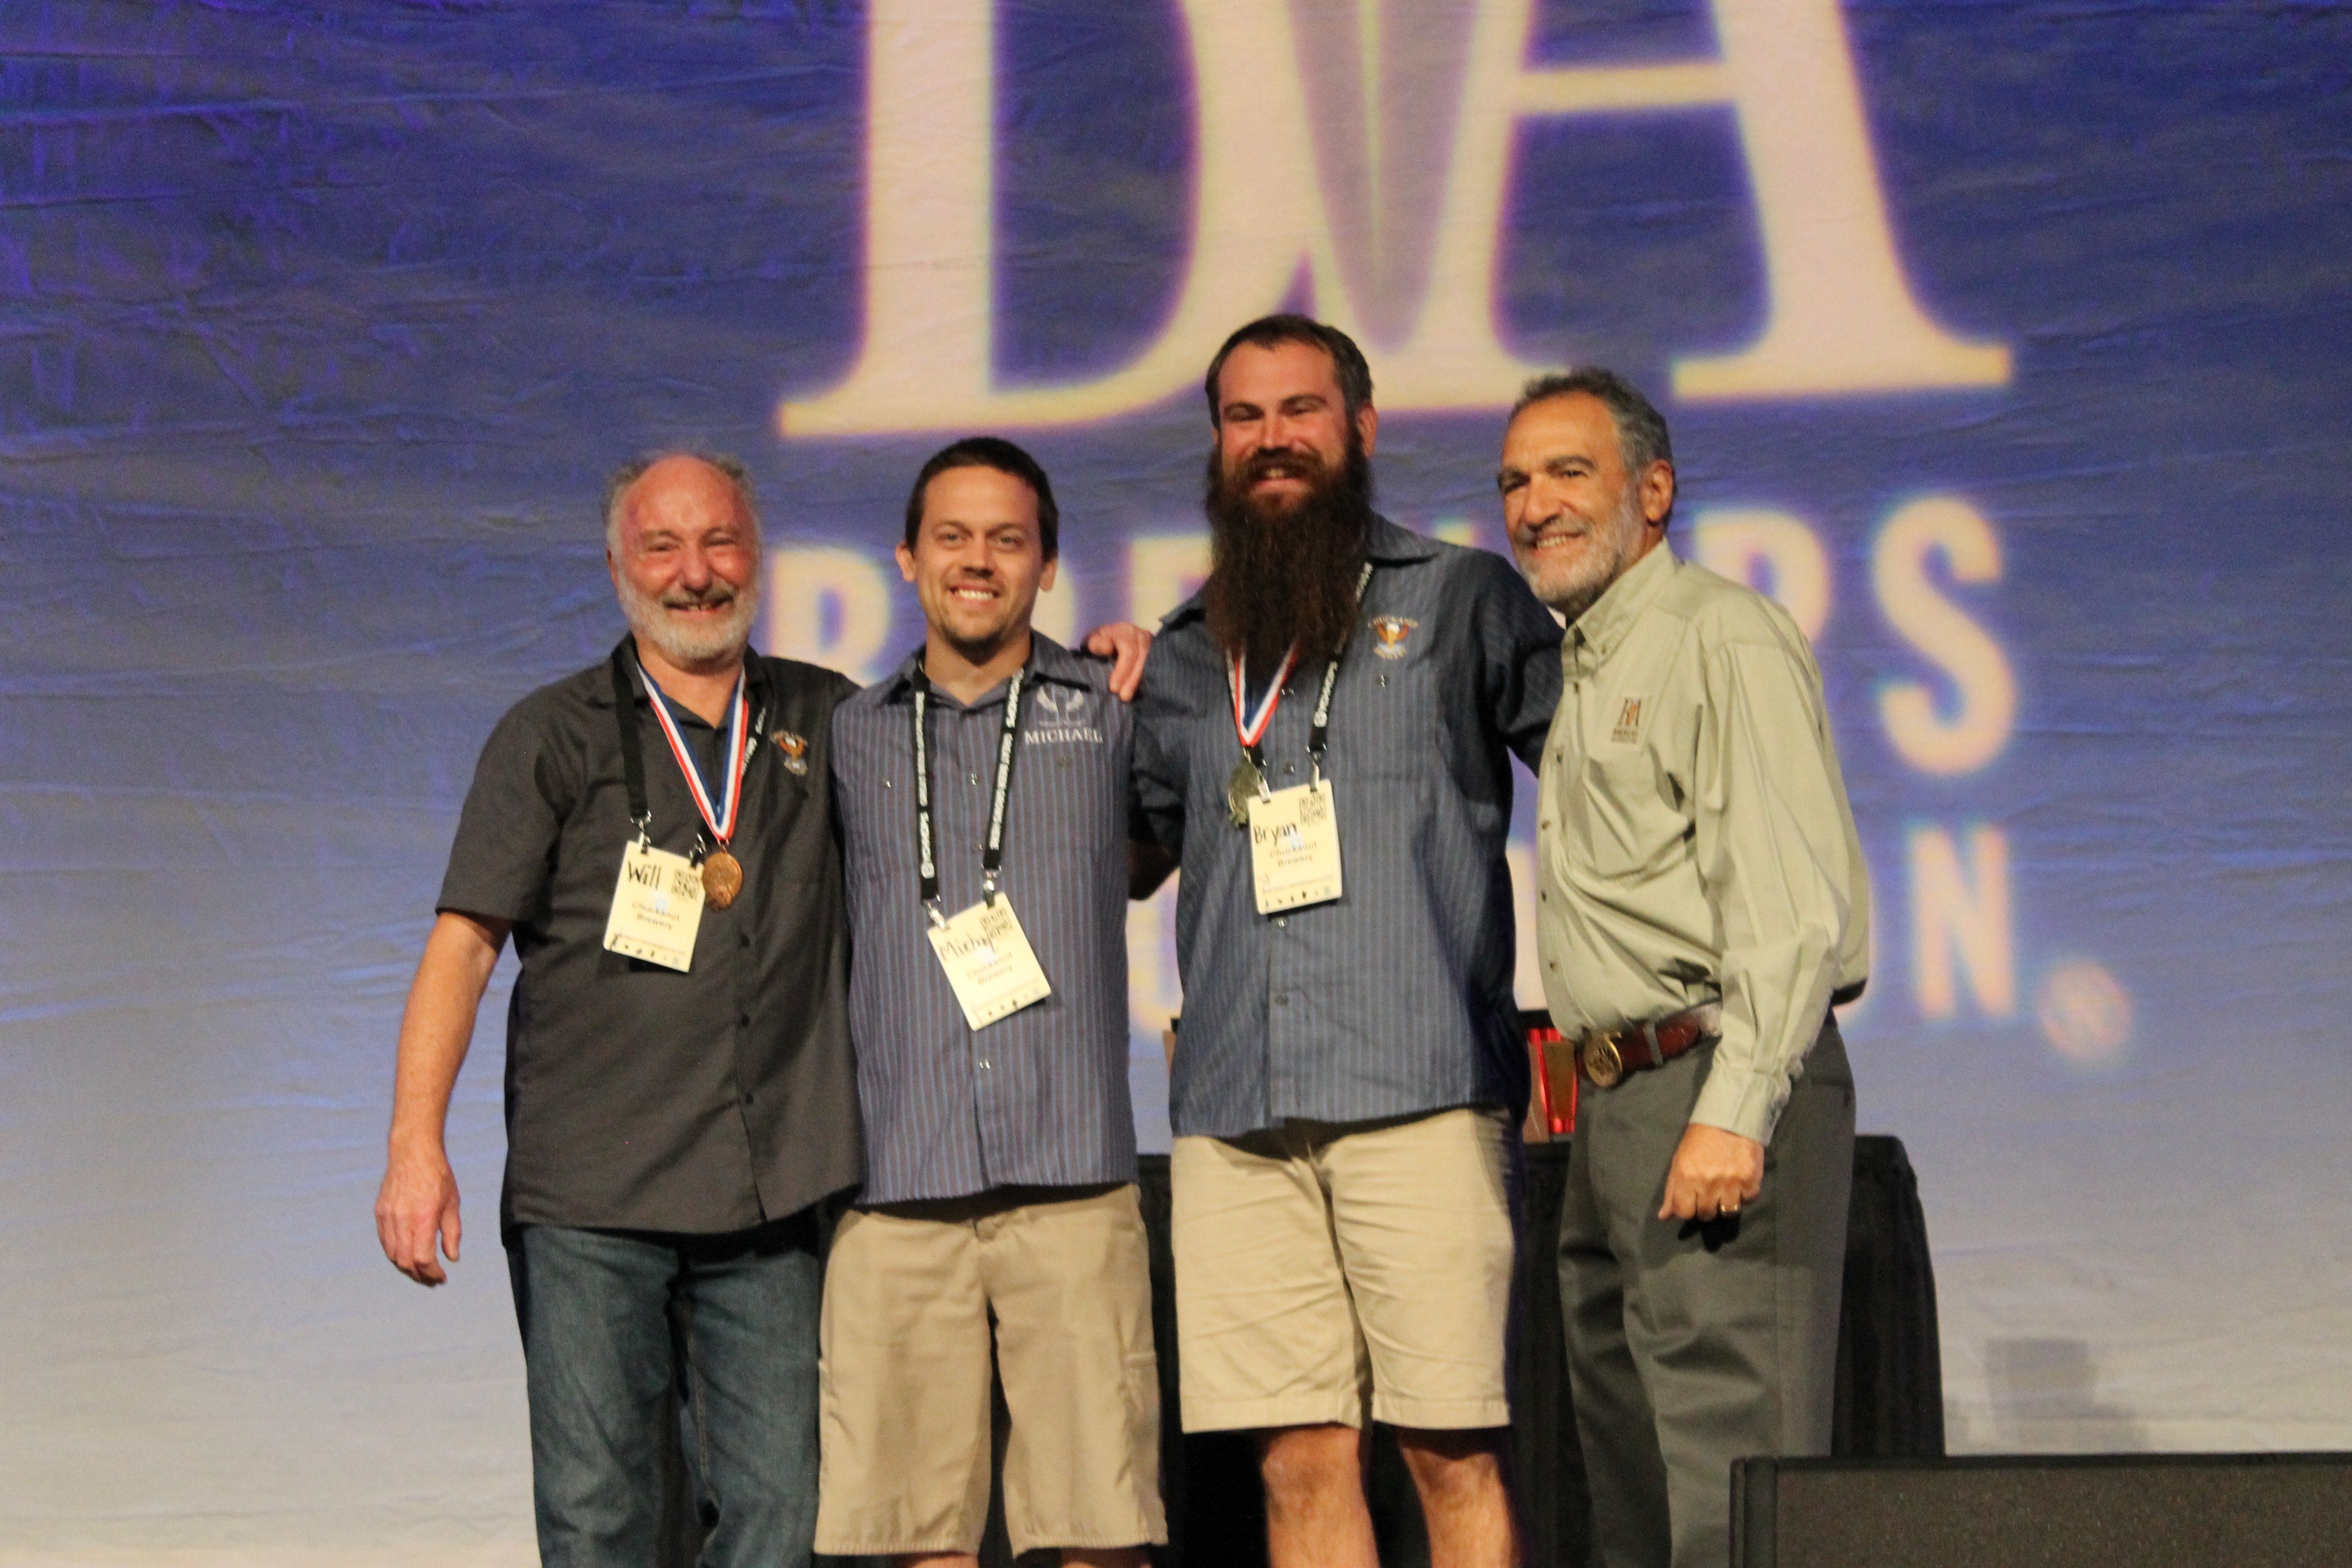 Chuckanut Brewery at 2015 GABF Awards